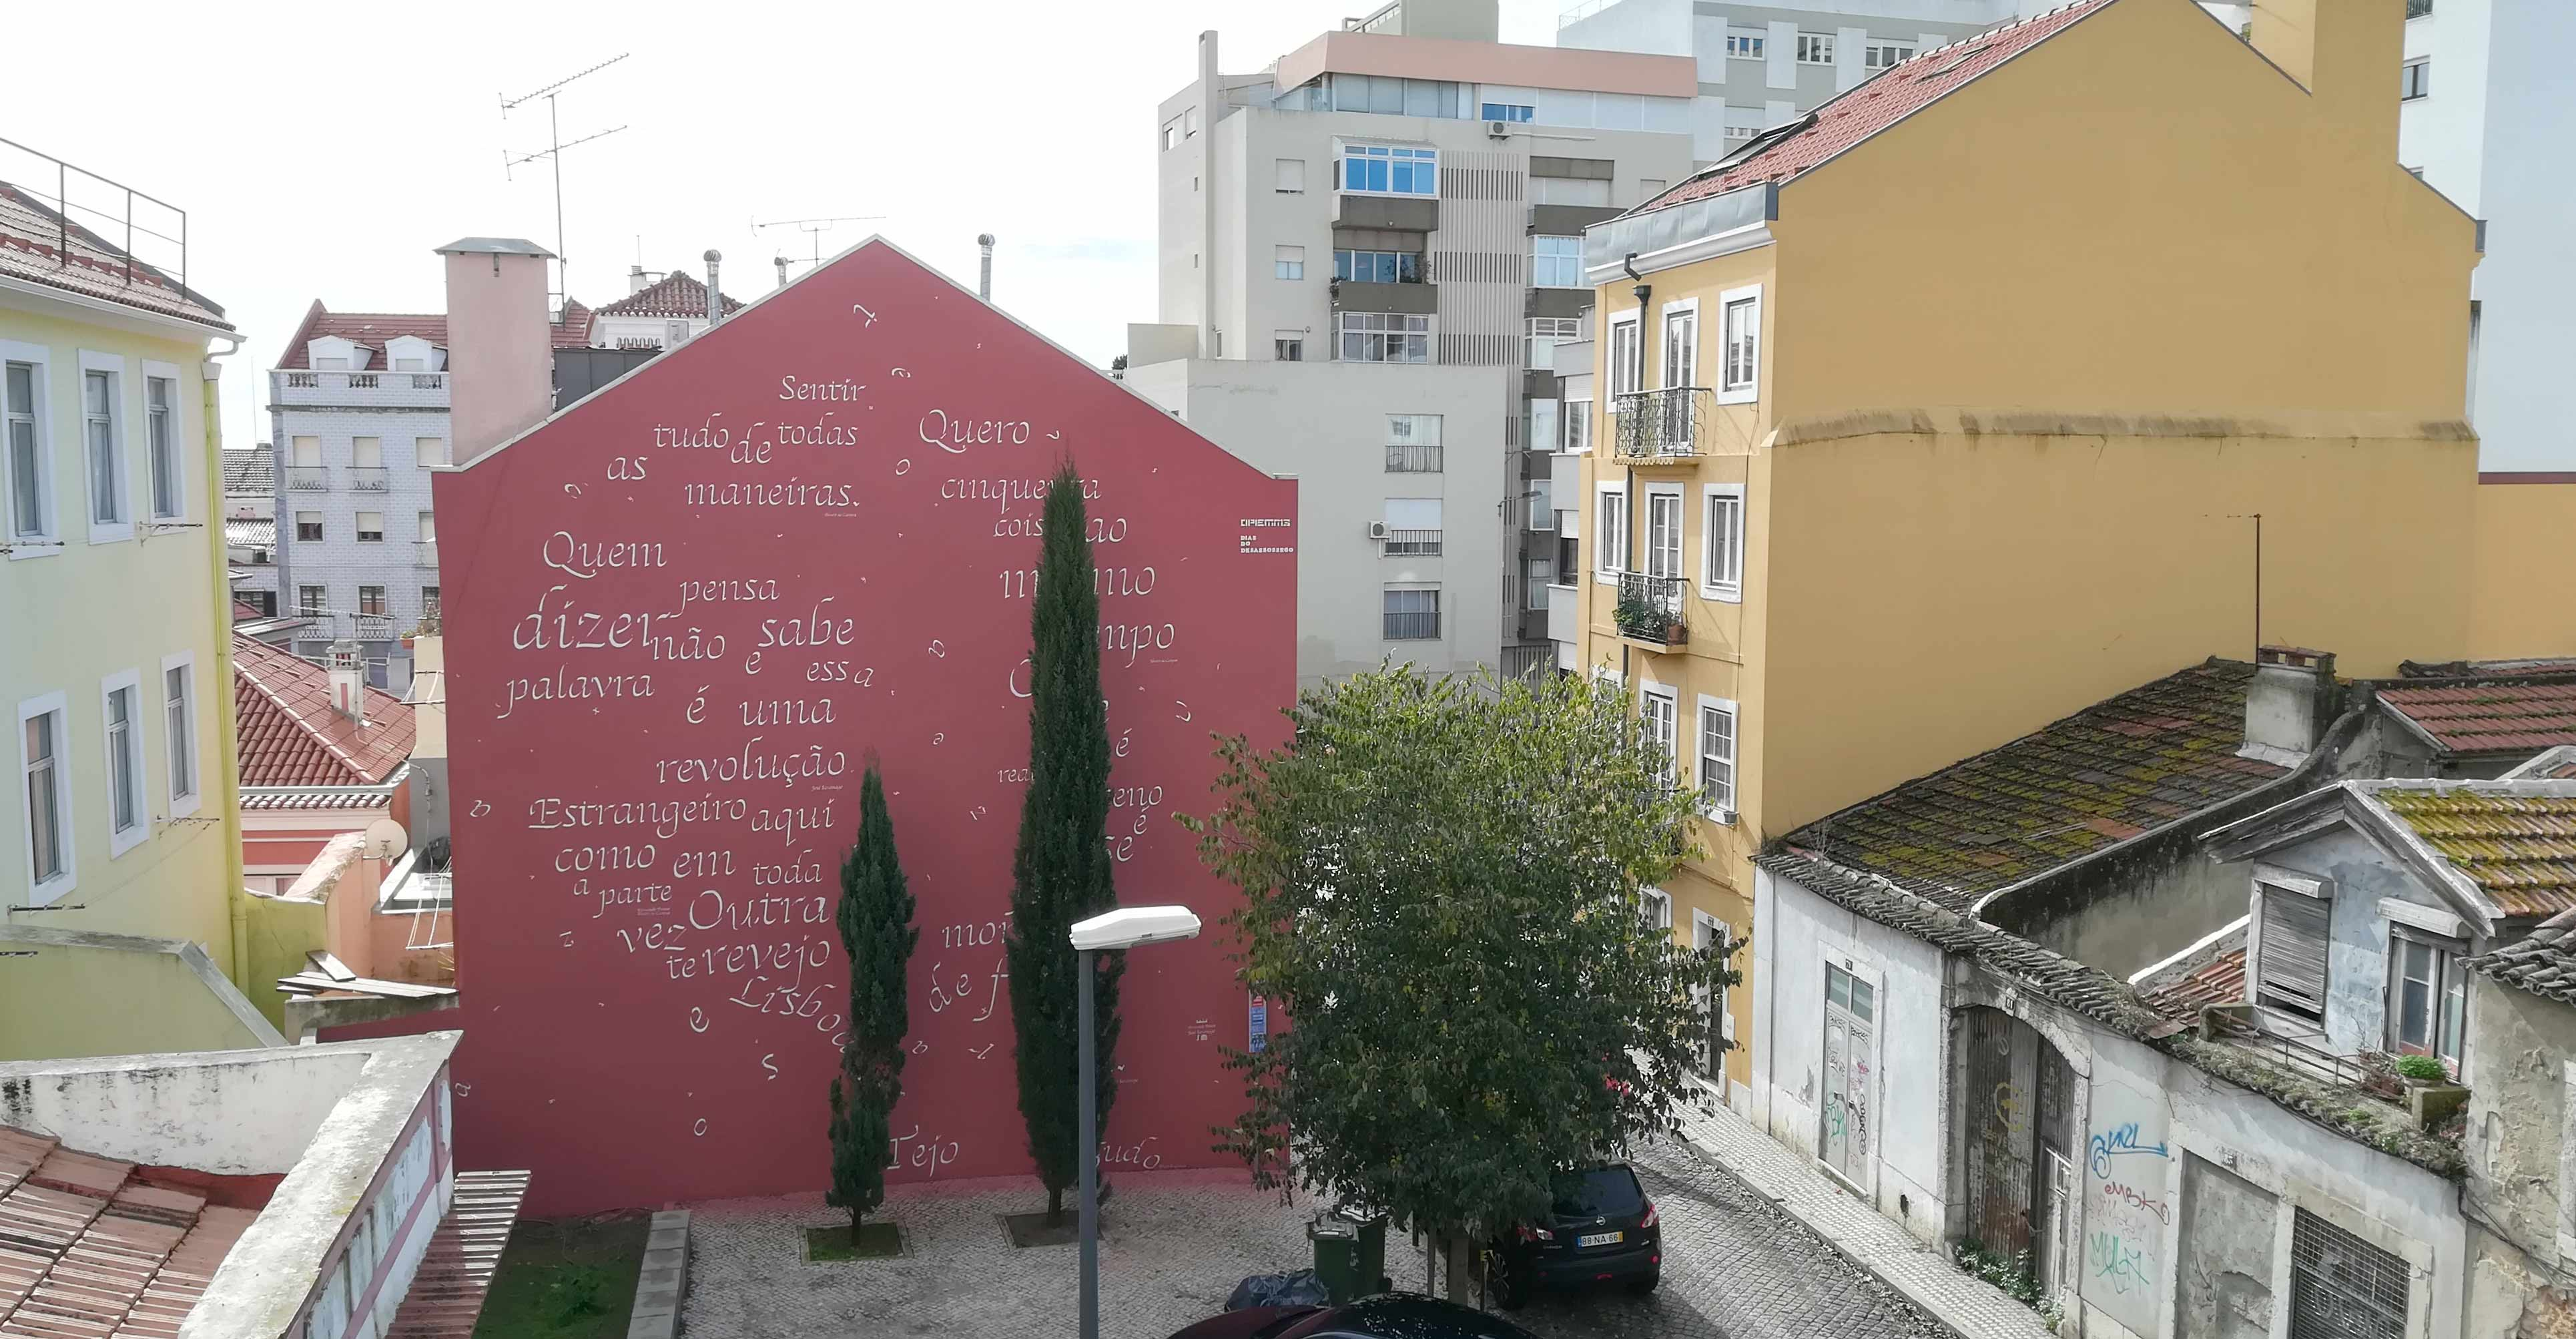 To Pessoa and Saramago: a poetry homage by Opiemme in Lisbon, Portugal. Artes & contextos opiemmeheader